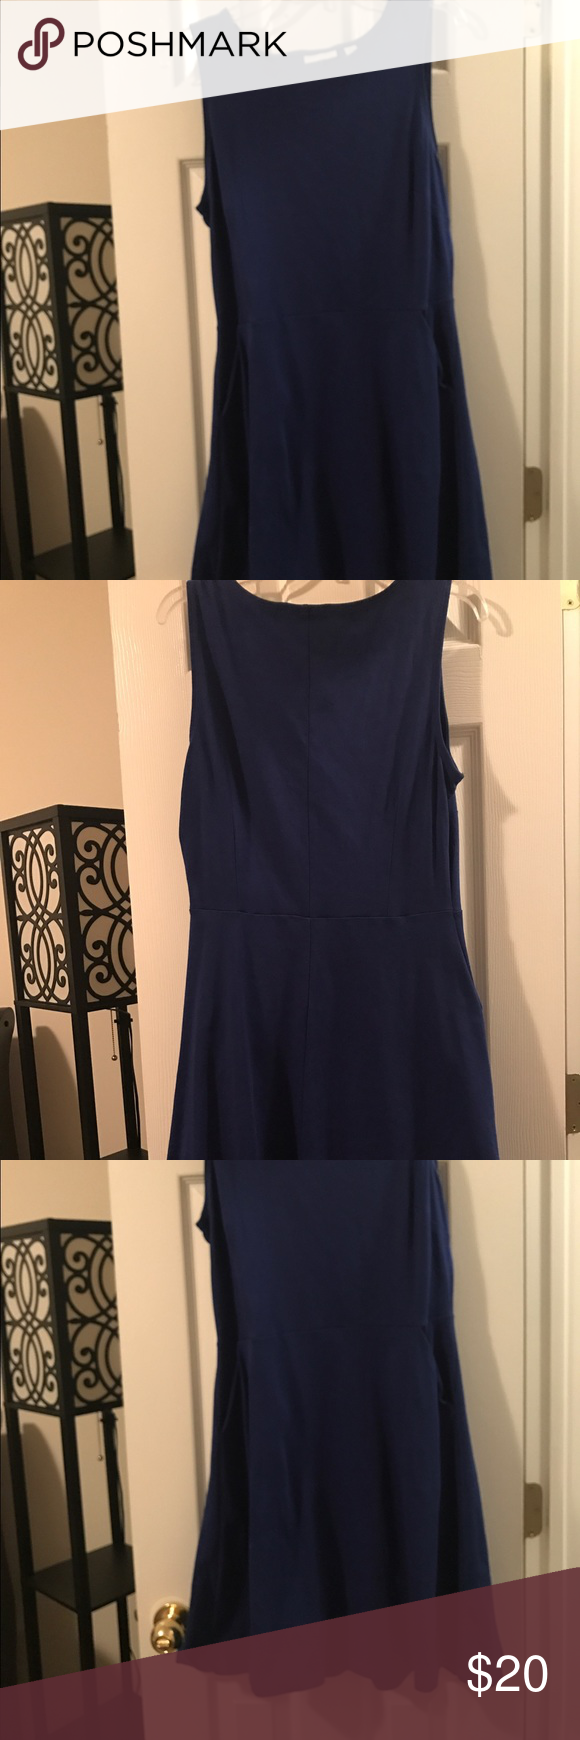 New York & Co Skater Style Cobalt Dress - Pockets! EUC New York & Co Skater Style Cobalt Dress - with Pockets!  This sleeveless dress is a stretchy cotton with a skirt that flares beginning at the waist seam shown in pictures.  It was only worn a few times over a turtleneck with tights for a winter layered look. New York & Company Dresses #cobaltdress